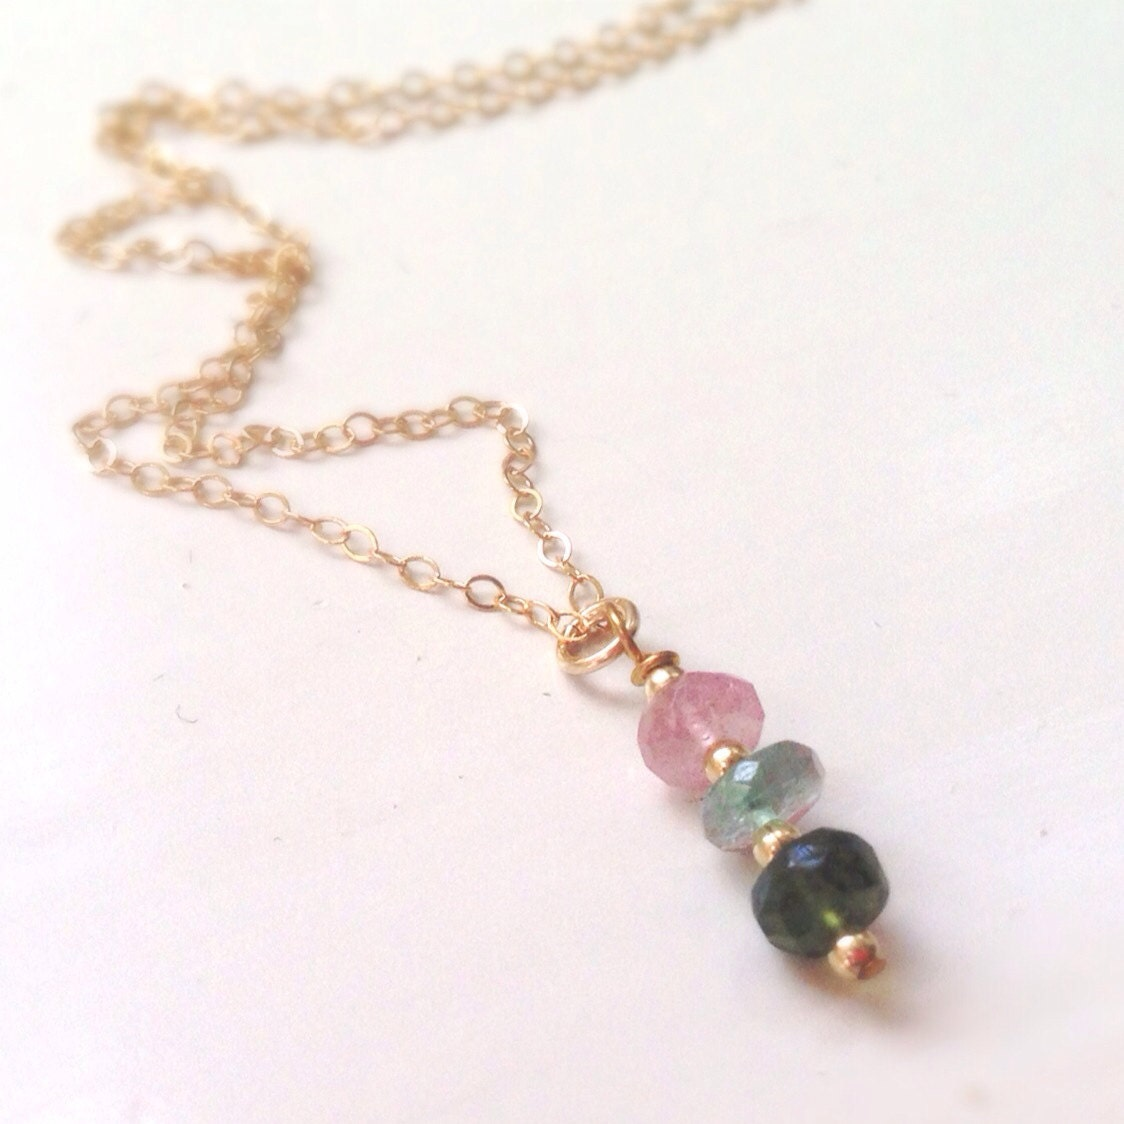 watermelon tourmaline necklace pink green and gold filled